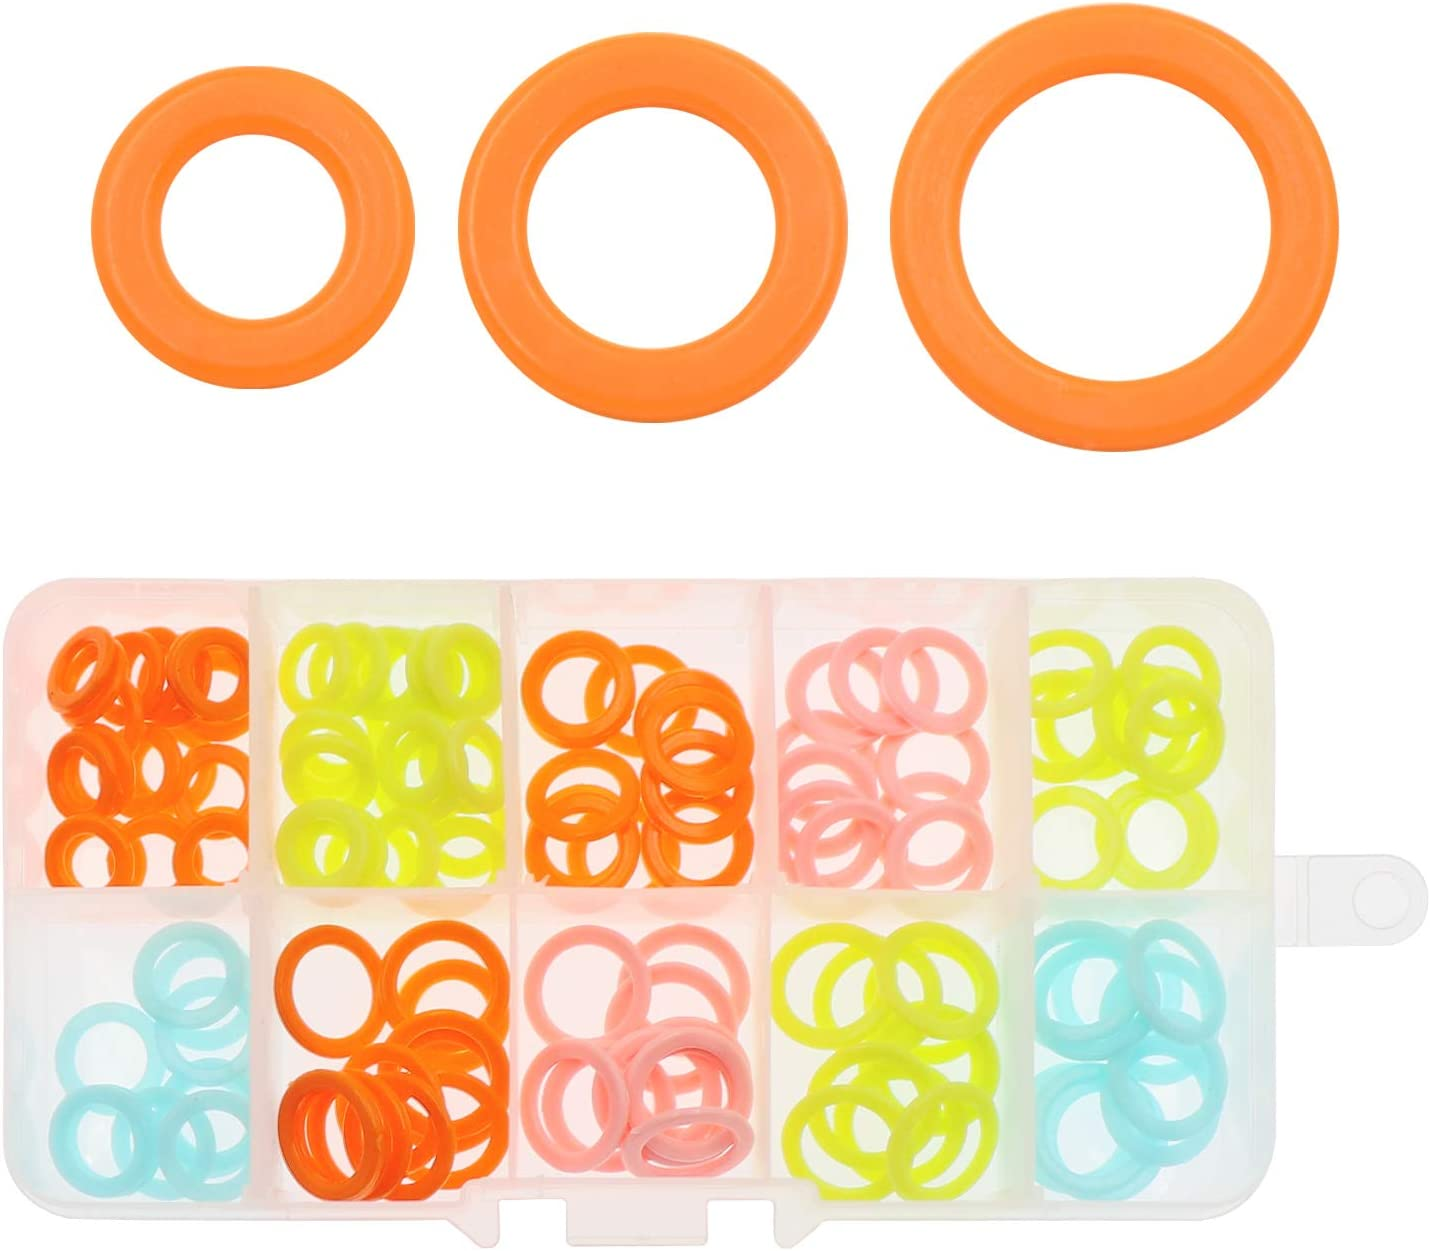 130 Pcs Knit Knitting Stitch Markers Rings 3 Sizes Assorted Color